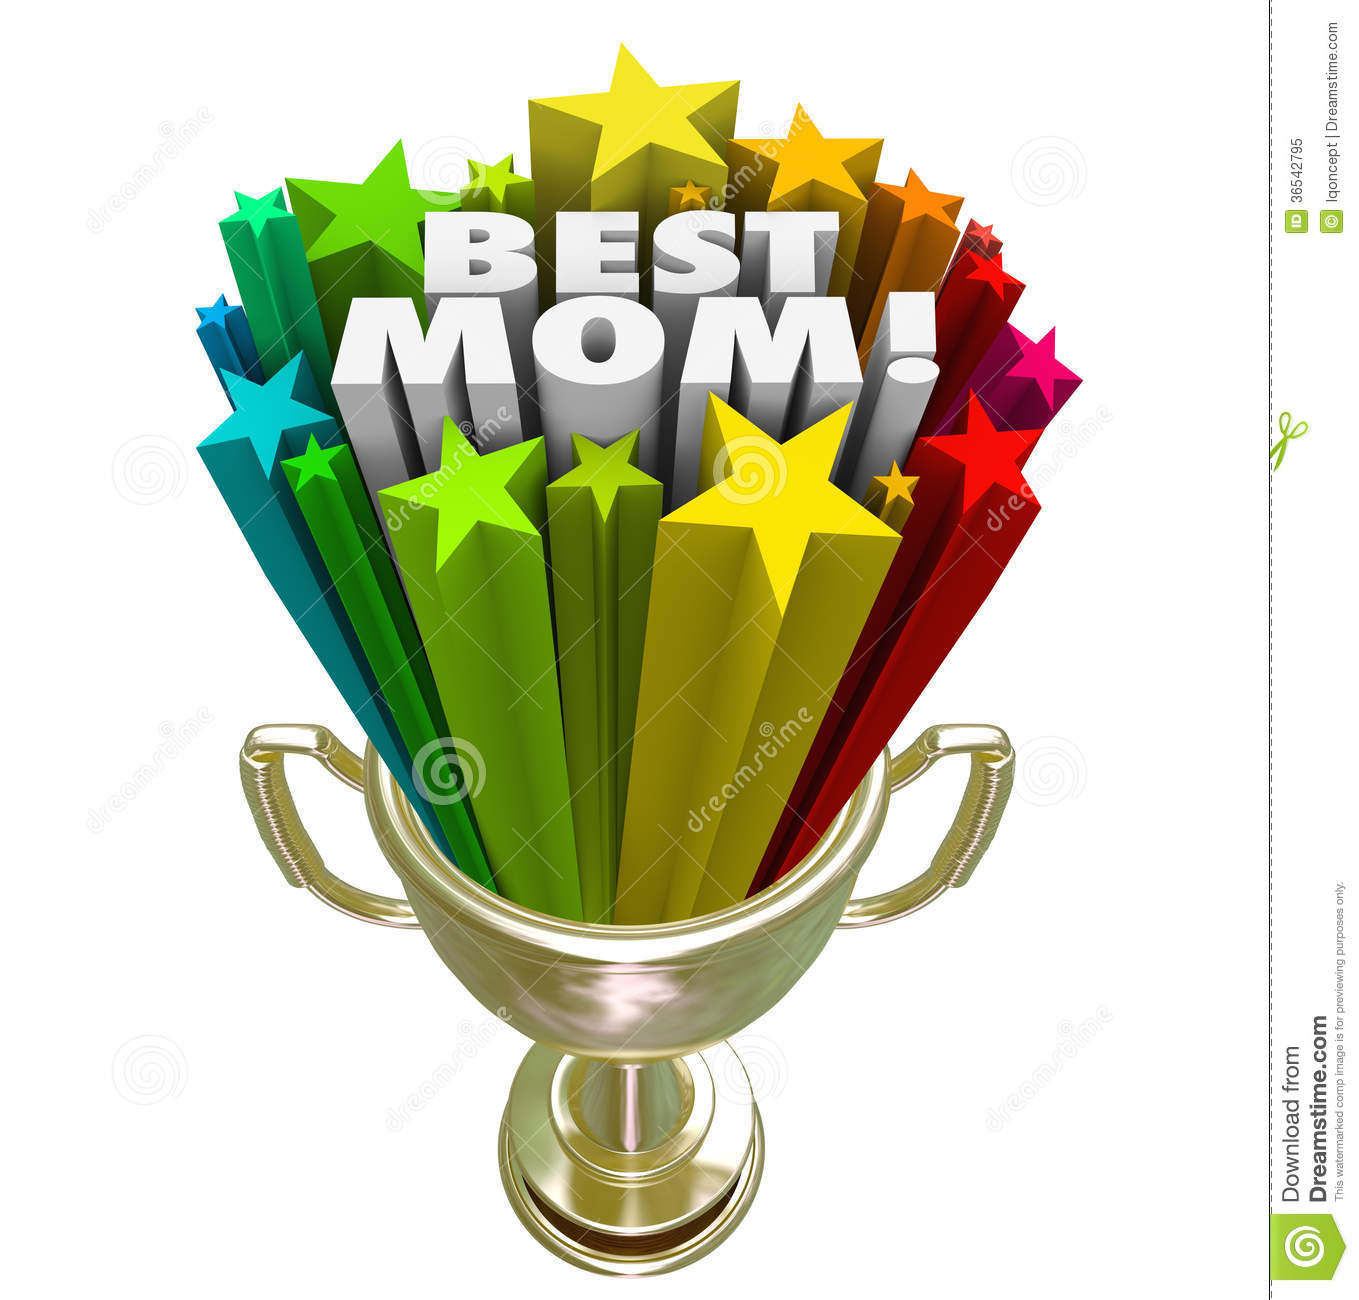 Best Mom parenting prize, trophy or award given to world's greatest ...